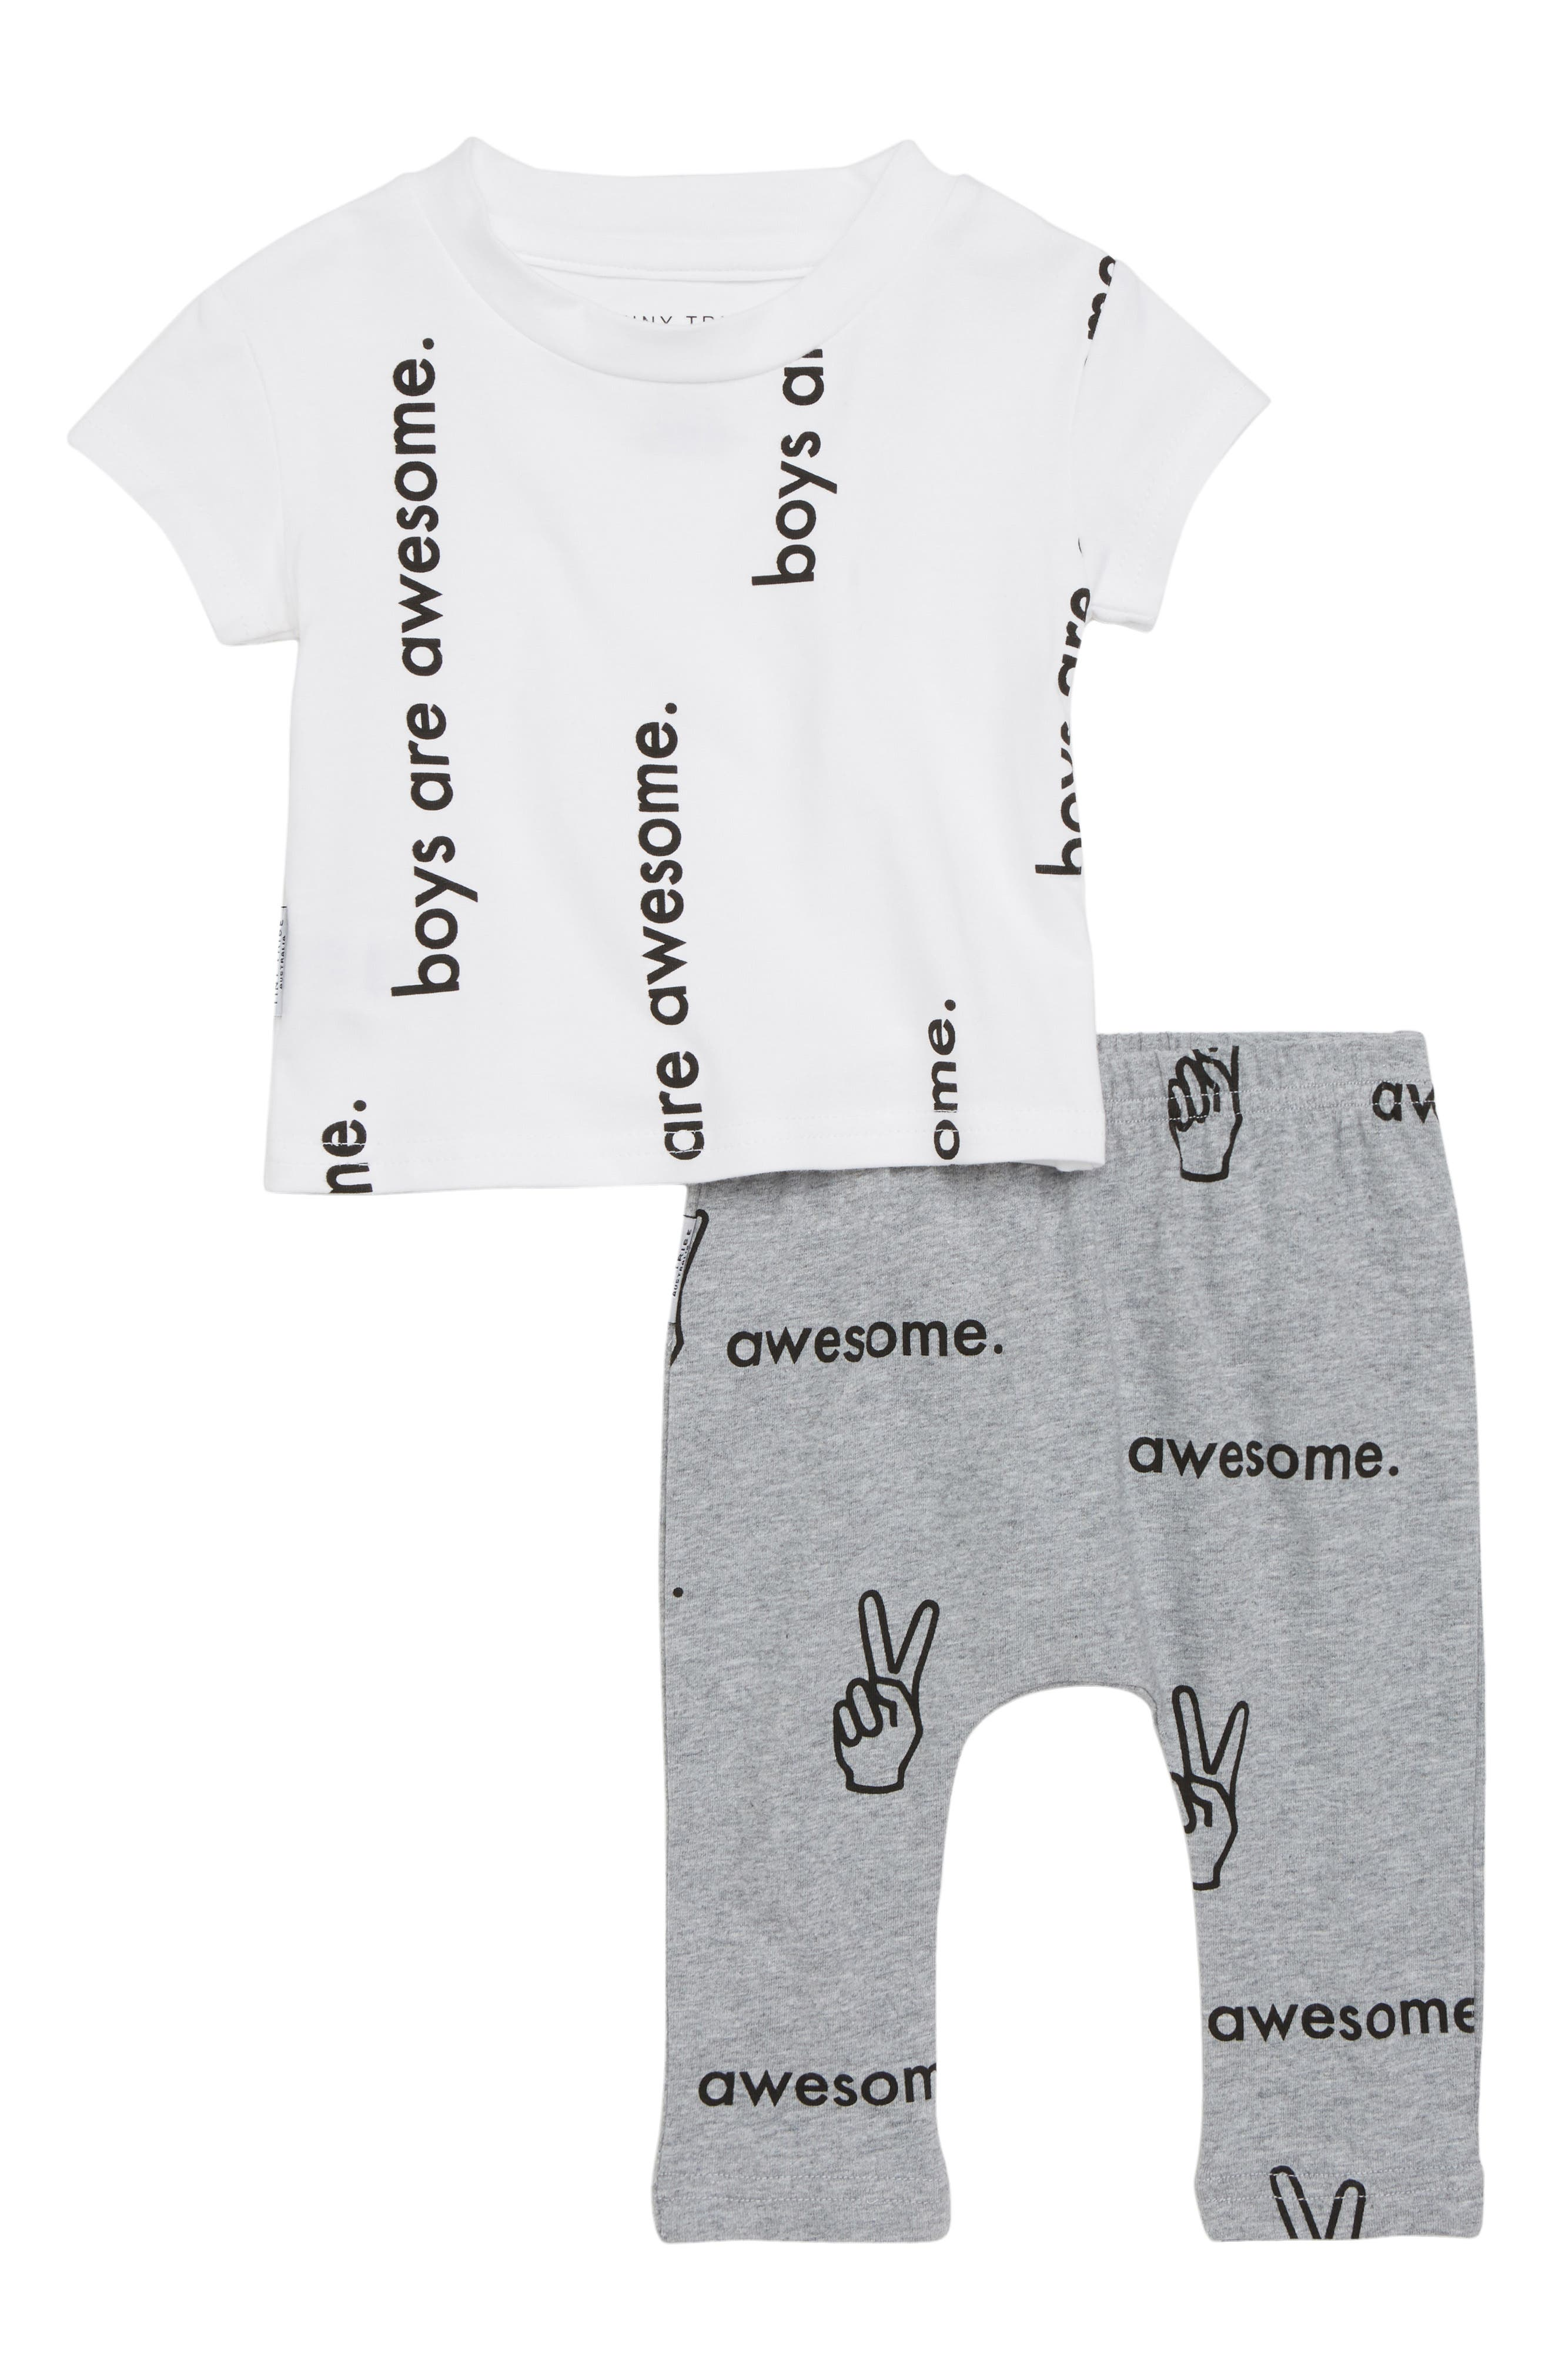 Boys are Awesome Graphic T-Shirt & Pants Set,                             Main thumbnail 1, color,                             White/ Grey